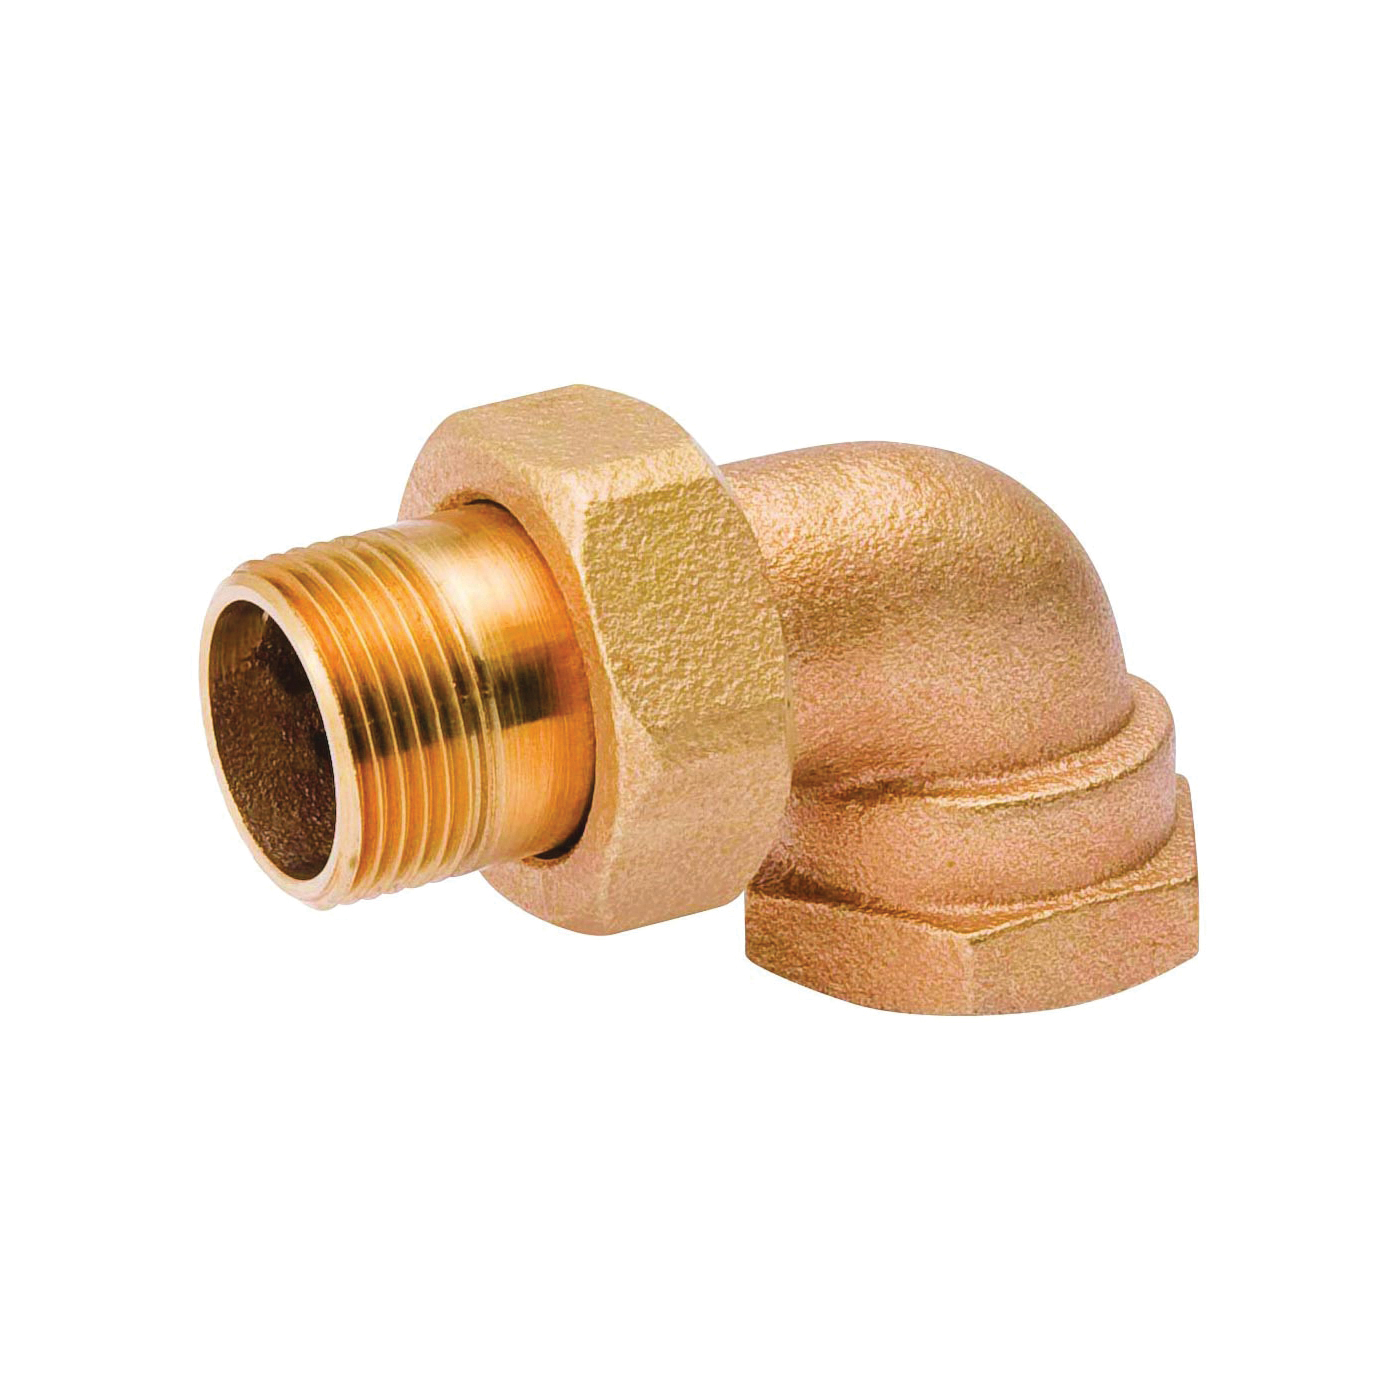 Picture of B & K 109-383 Radiator Elbow Nut and Tailpiece, Brass